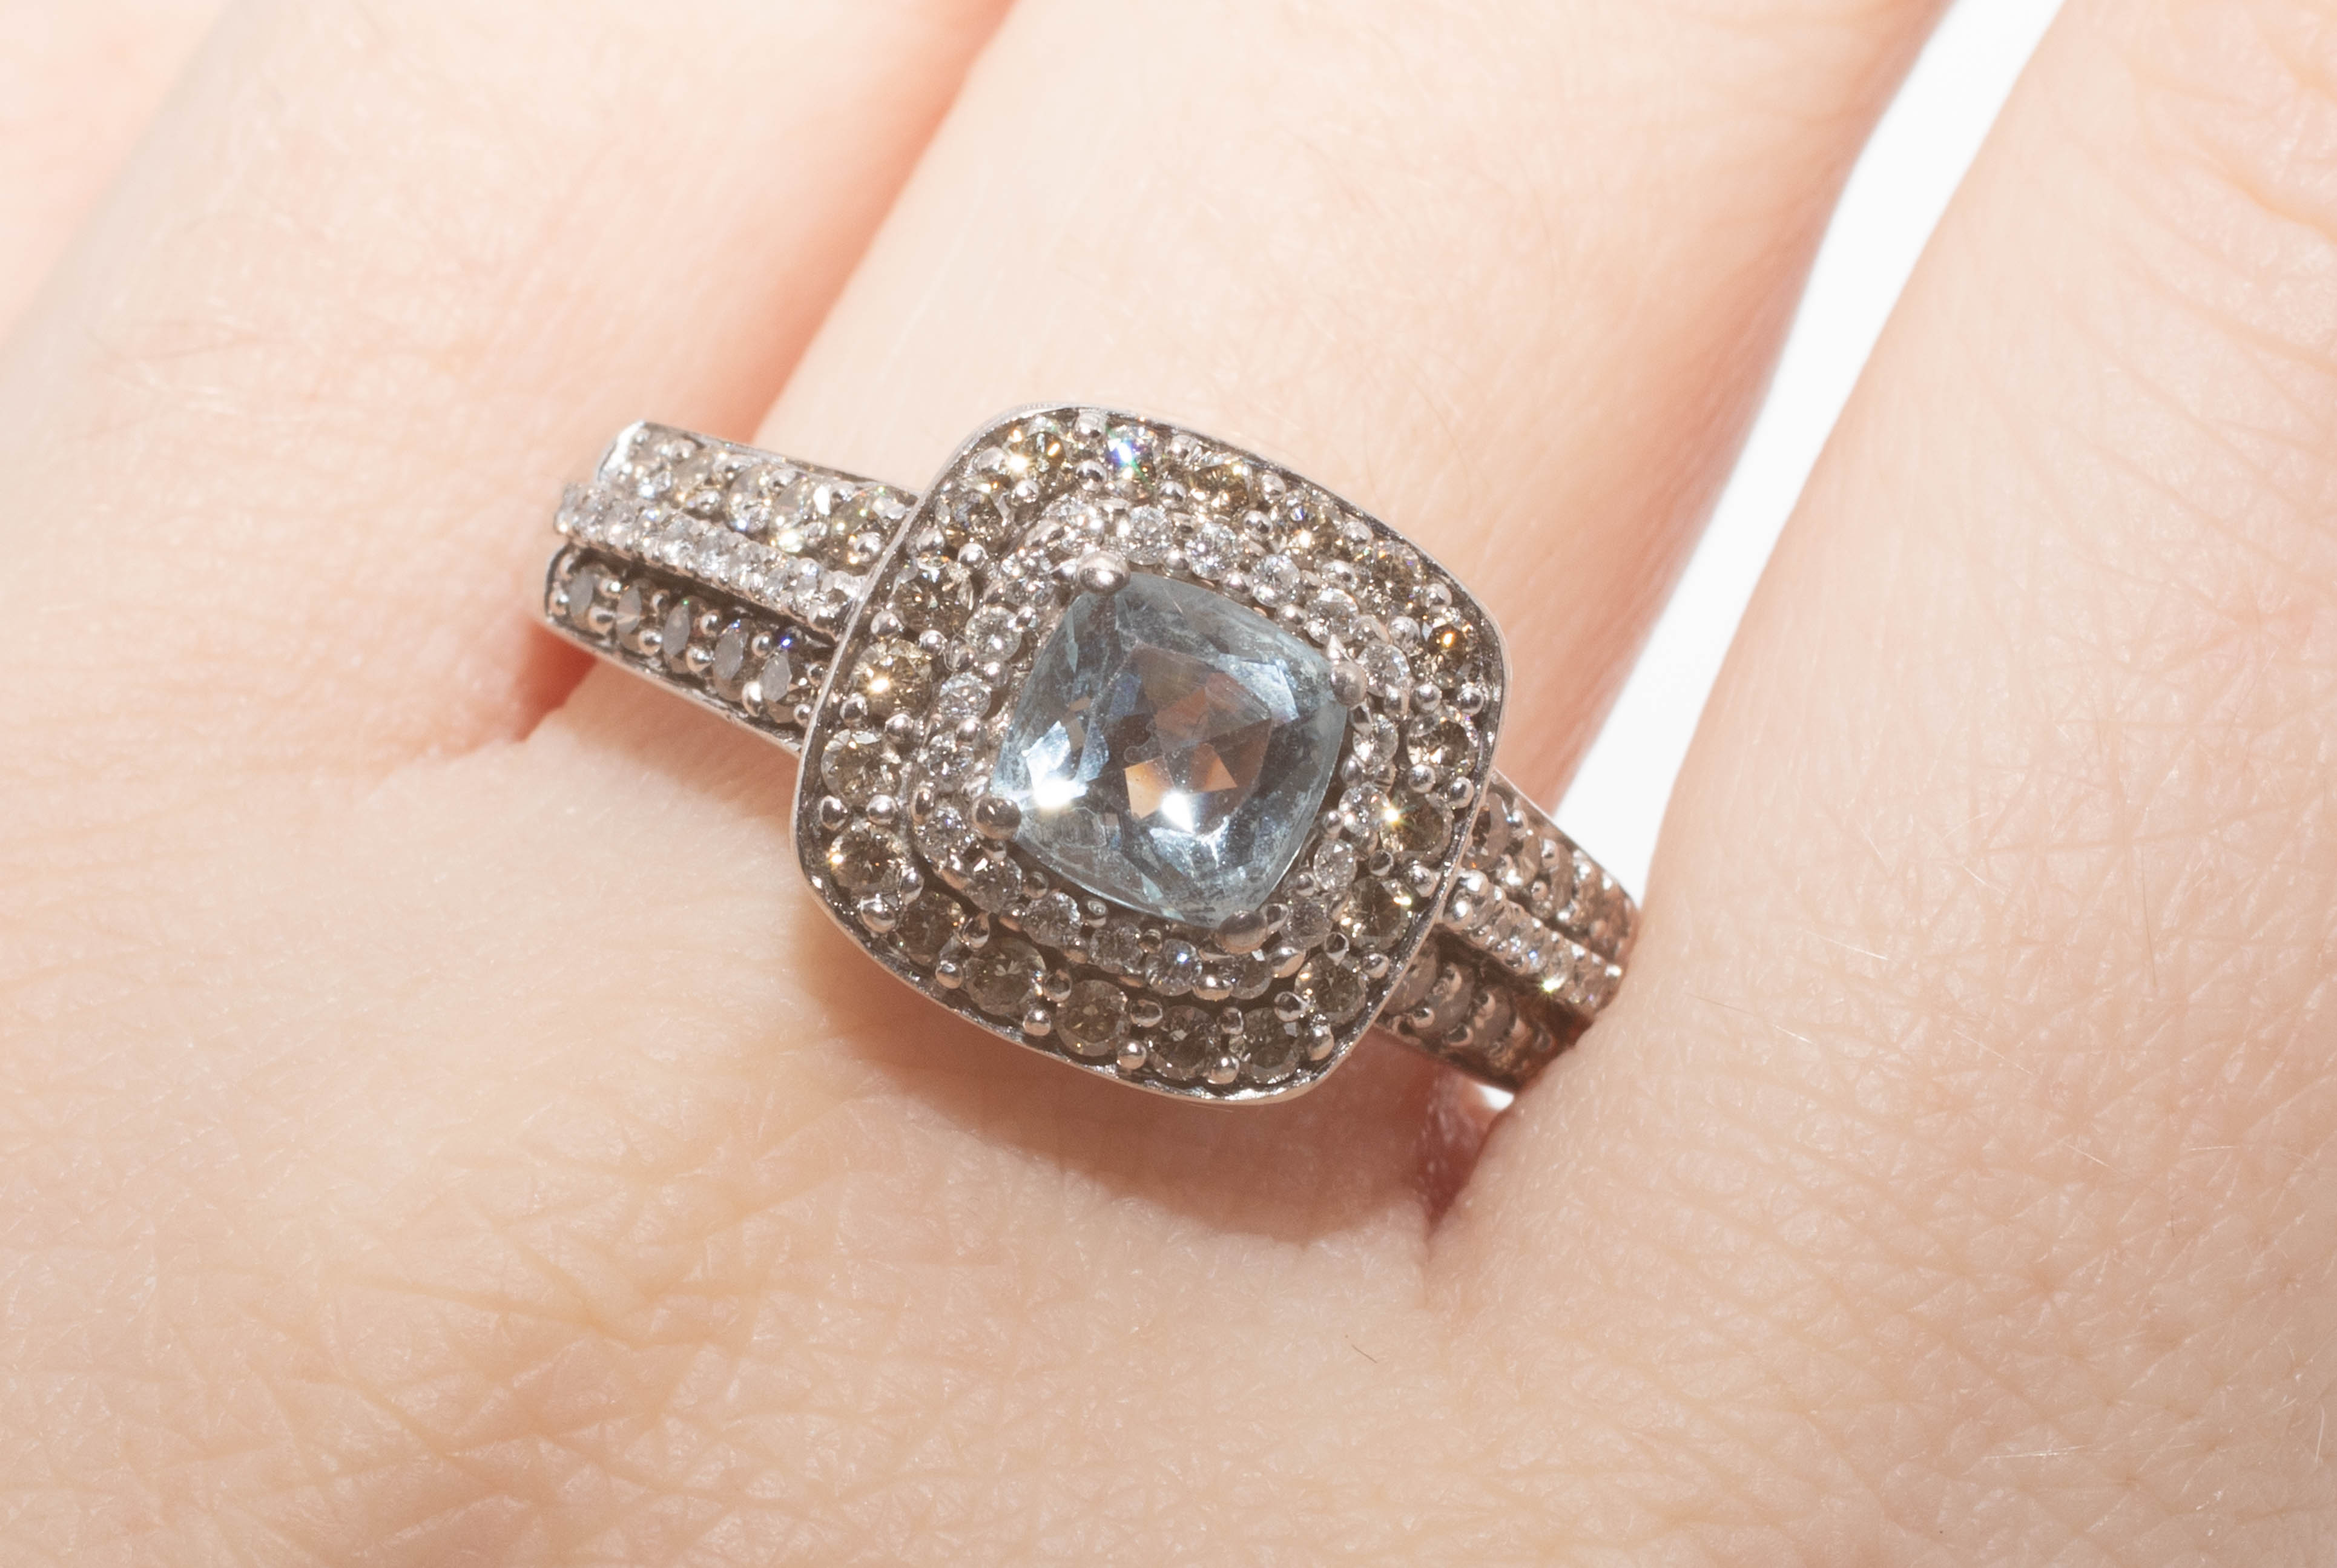 A 14ct aquamarine and diamond set cluster ring in white gold, size T. - Image 2 of 2